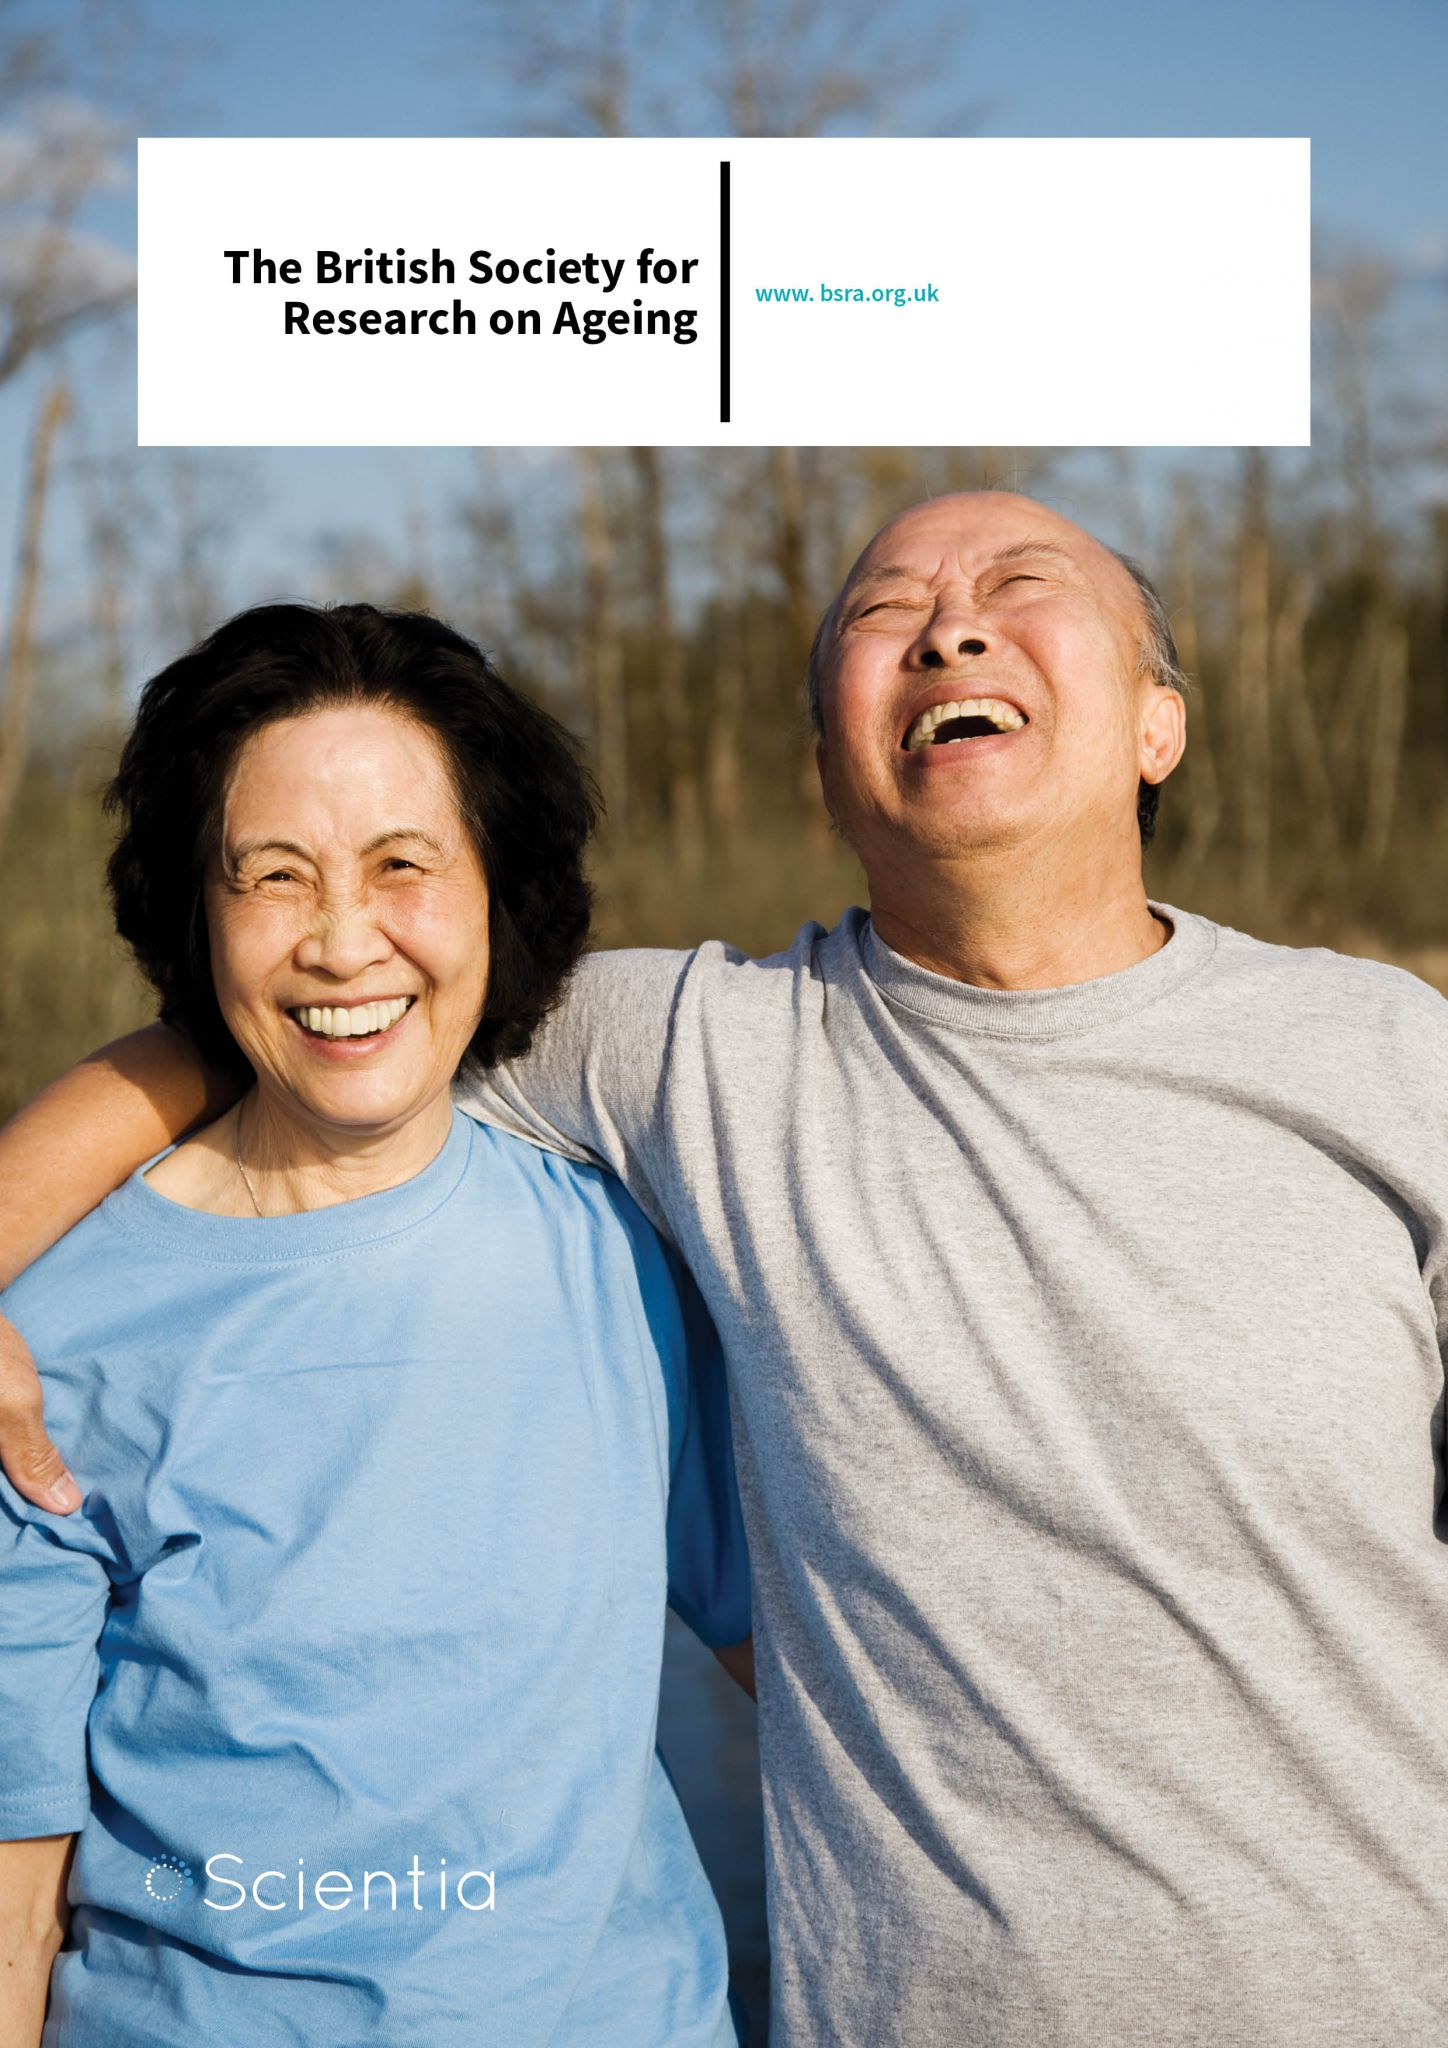 The British Society For Research On Ageing